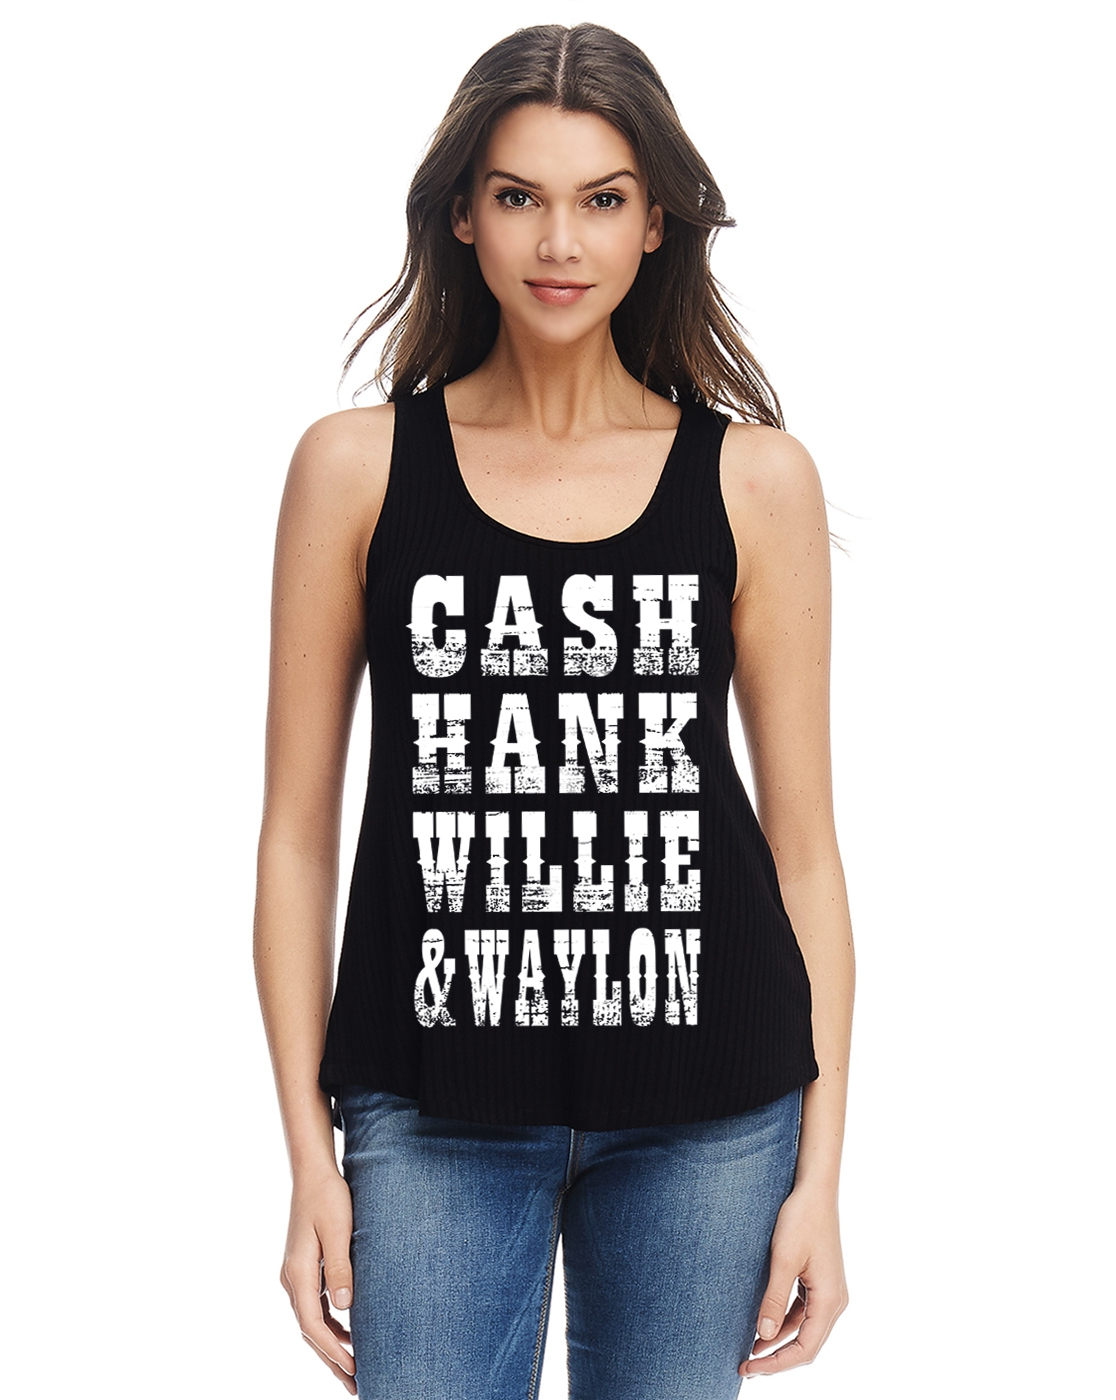 Cash urban graphic Scoop tank top - orangeshine.com